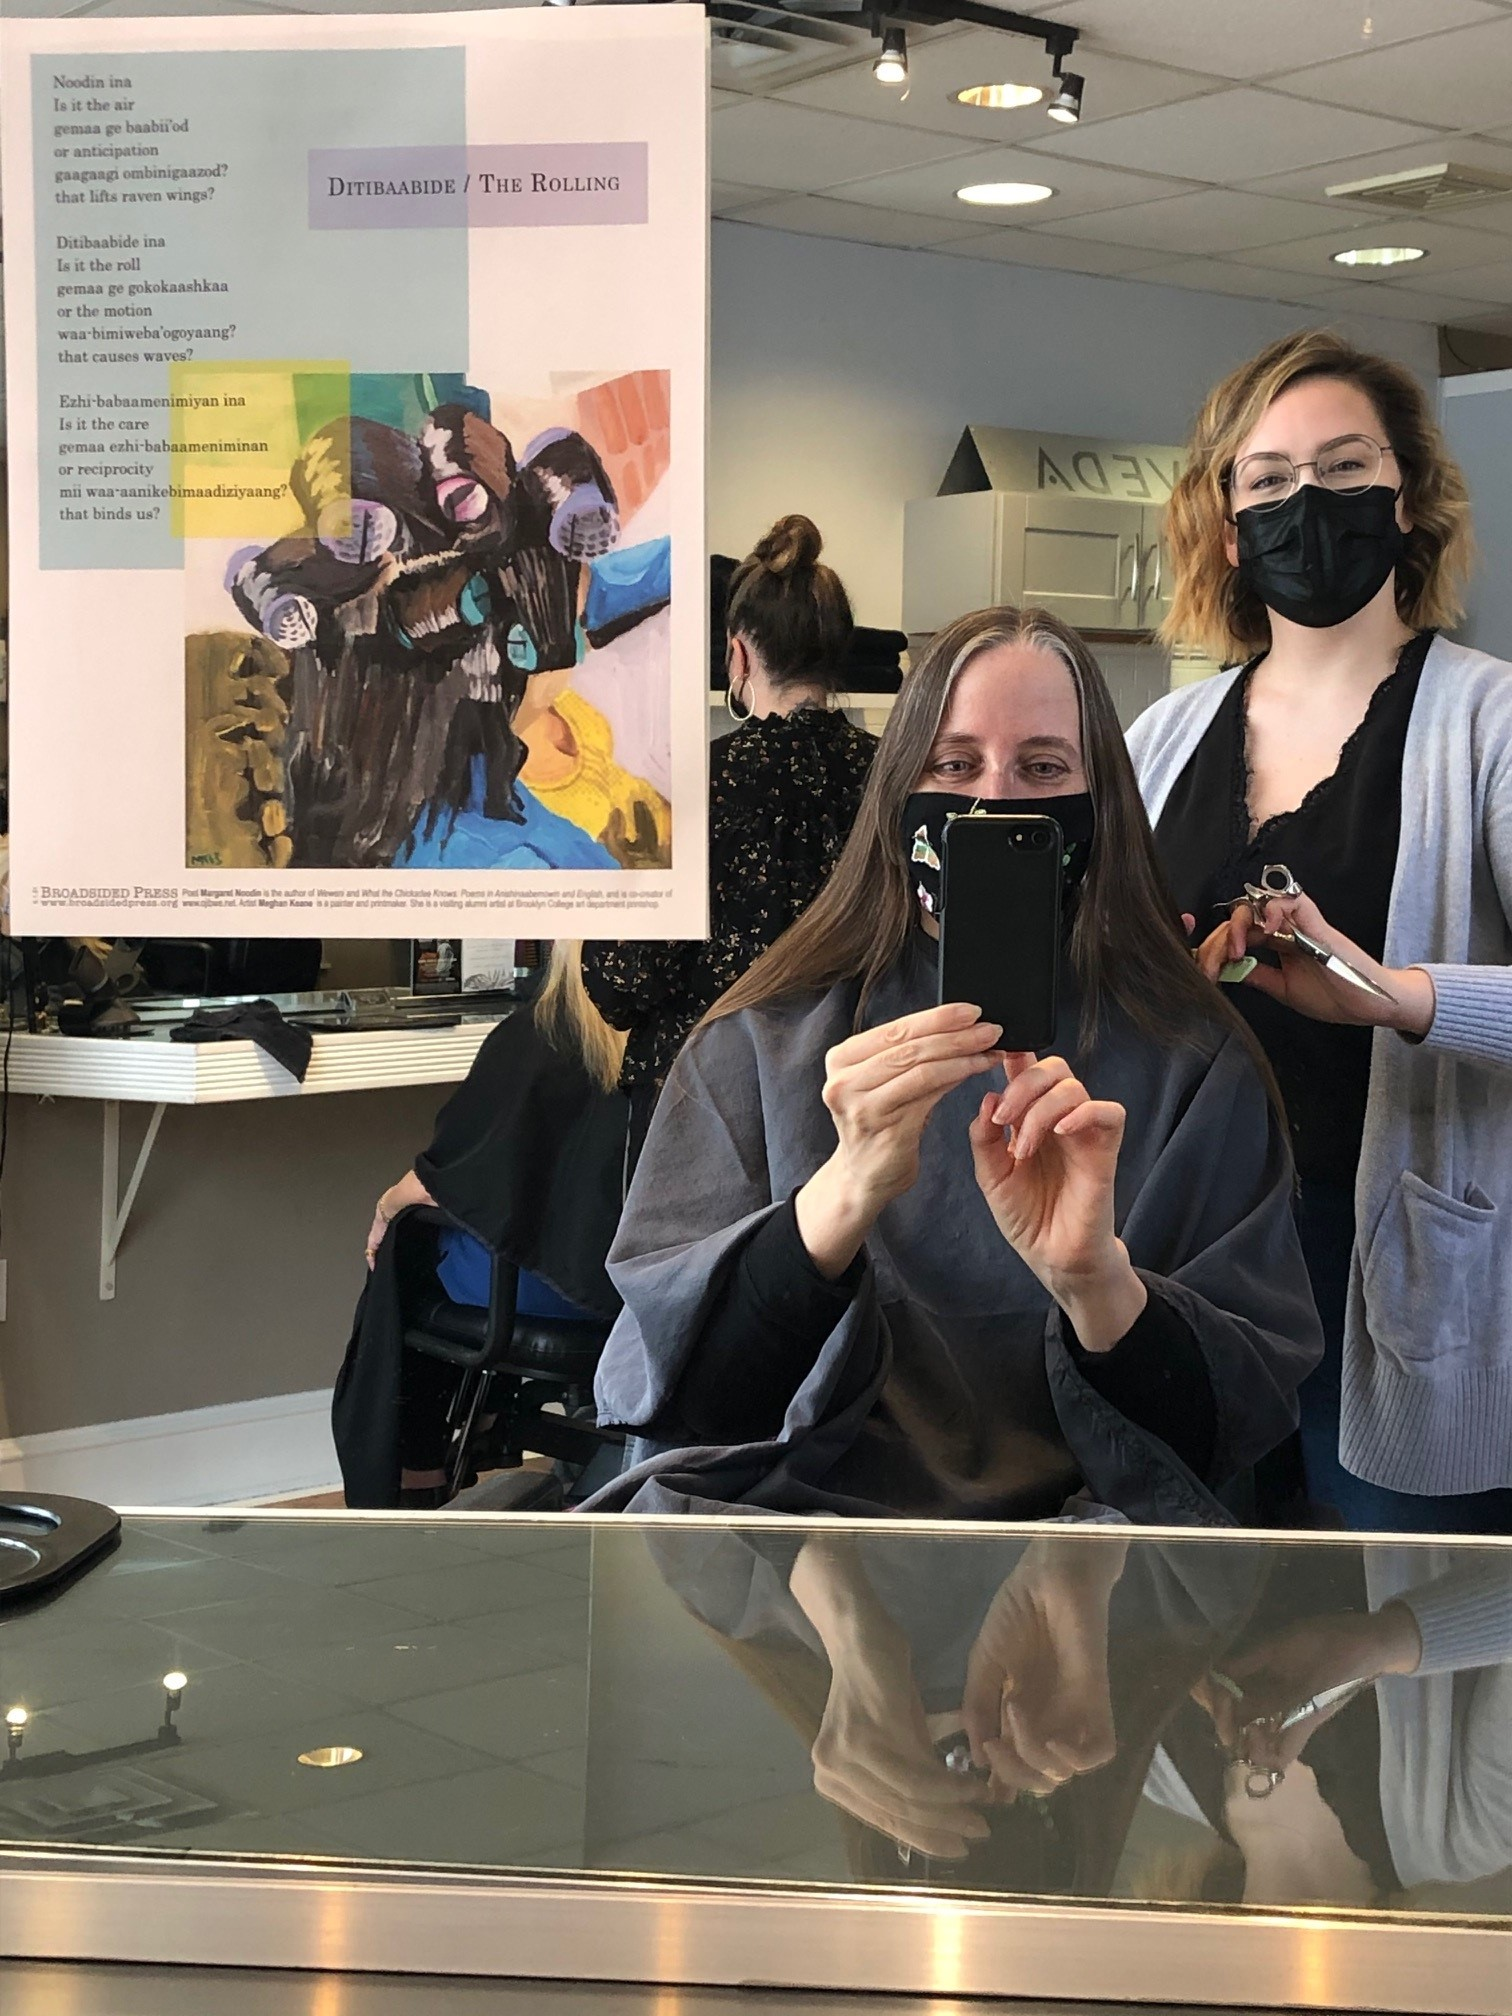 Margaret Noodin and her hair stylist shown in the mirror where her broadside is put.